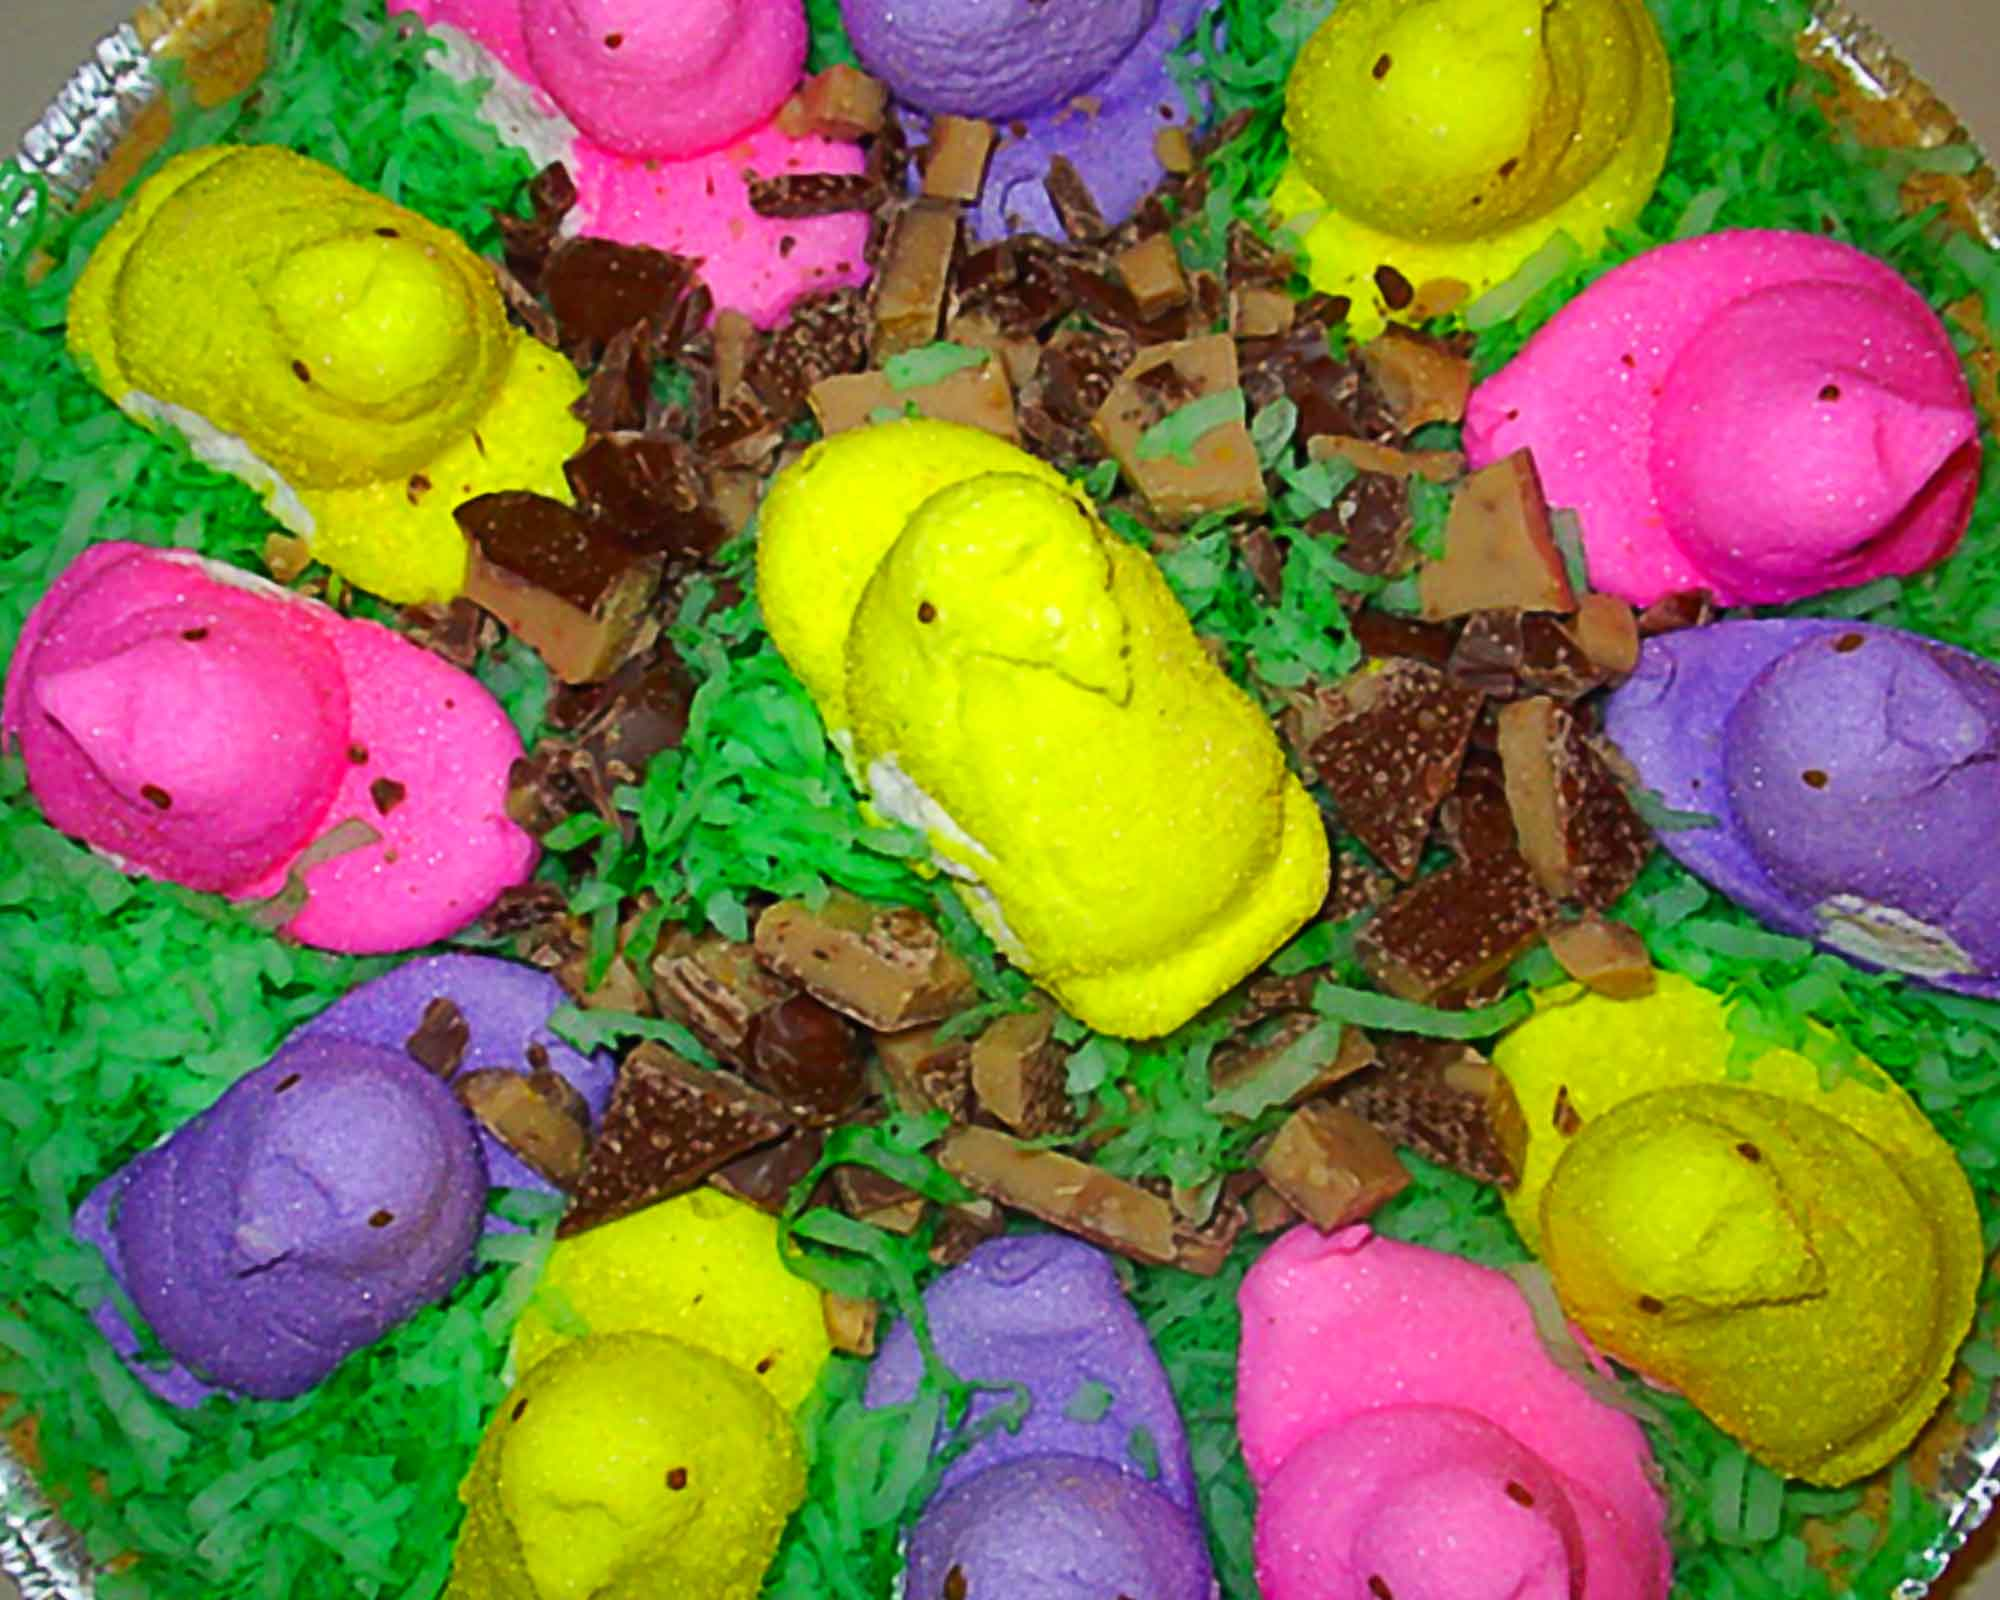 mores the peeps s mores for easter leftover peeps s more ice cream pie ...